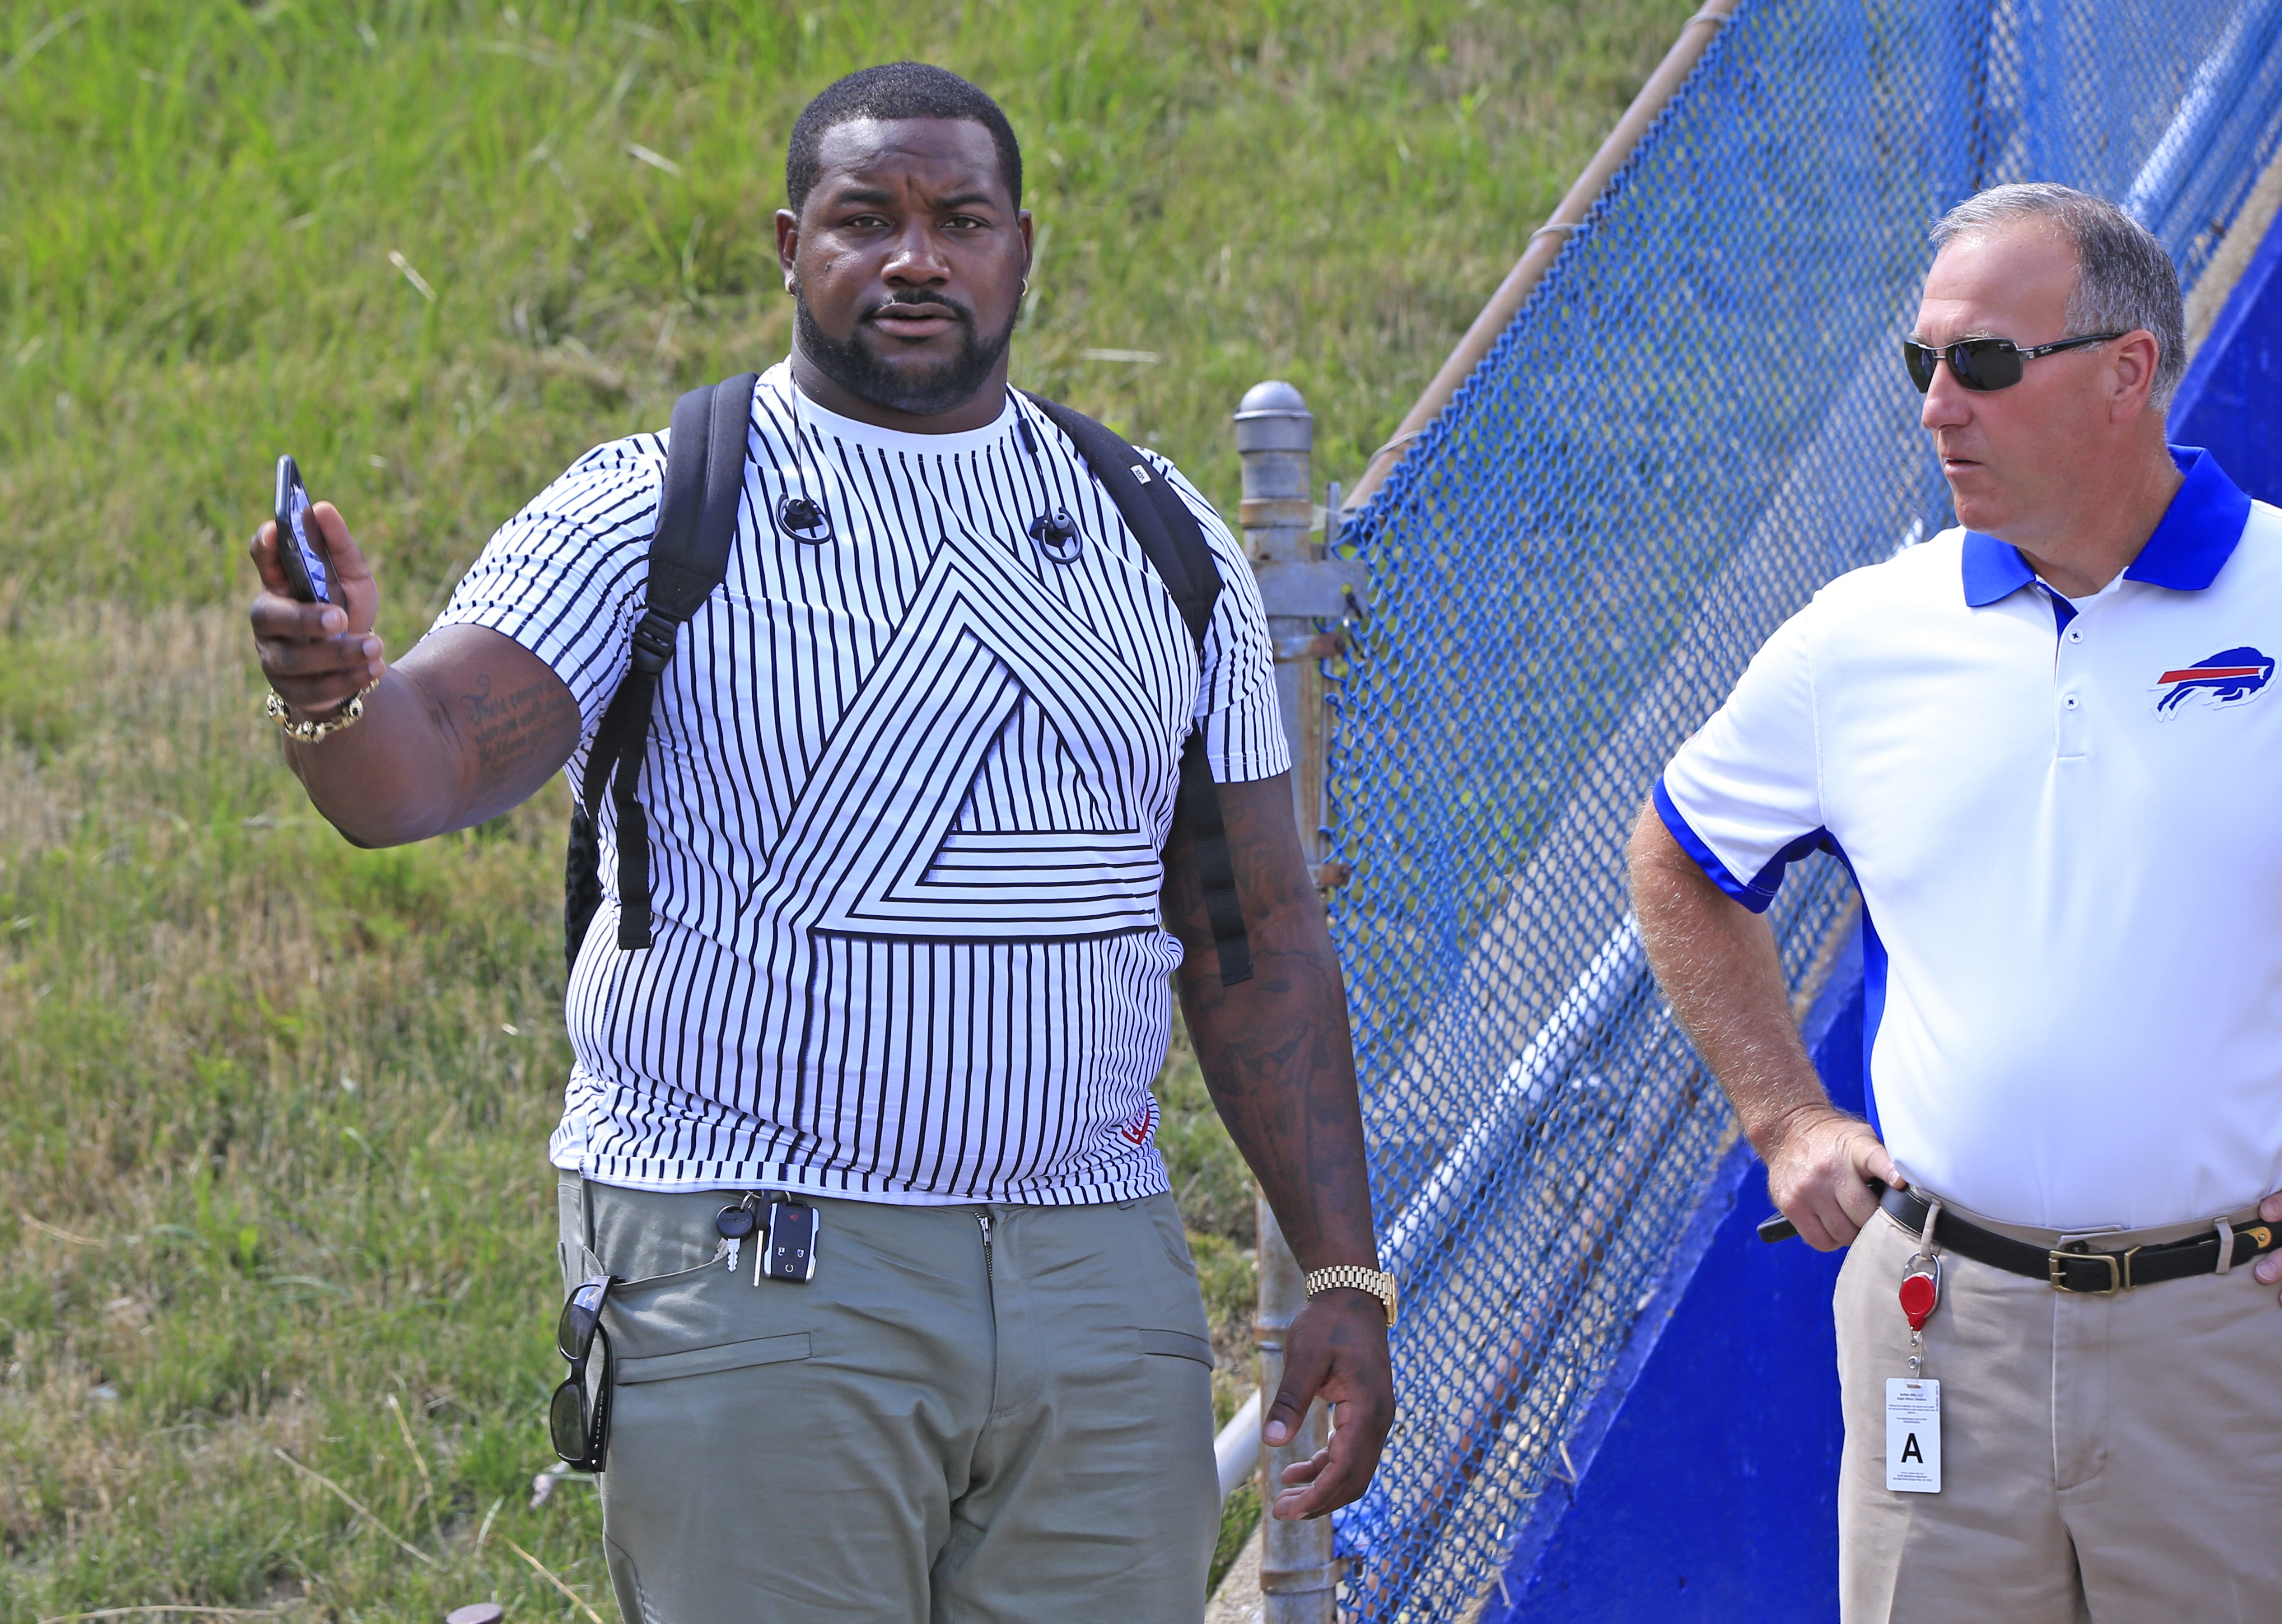 Buffalo Bills Marcell Dareus talks with Eddie Cotter, Buffalo Bills security prior to leaving the stadium before playing the New York Giants at New Era Field on Saturday, Aug. 20, 2016. (Harry Scull Jr./Buffalo News)